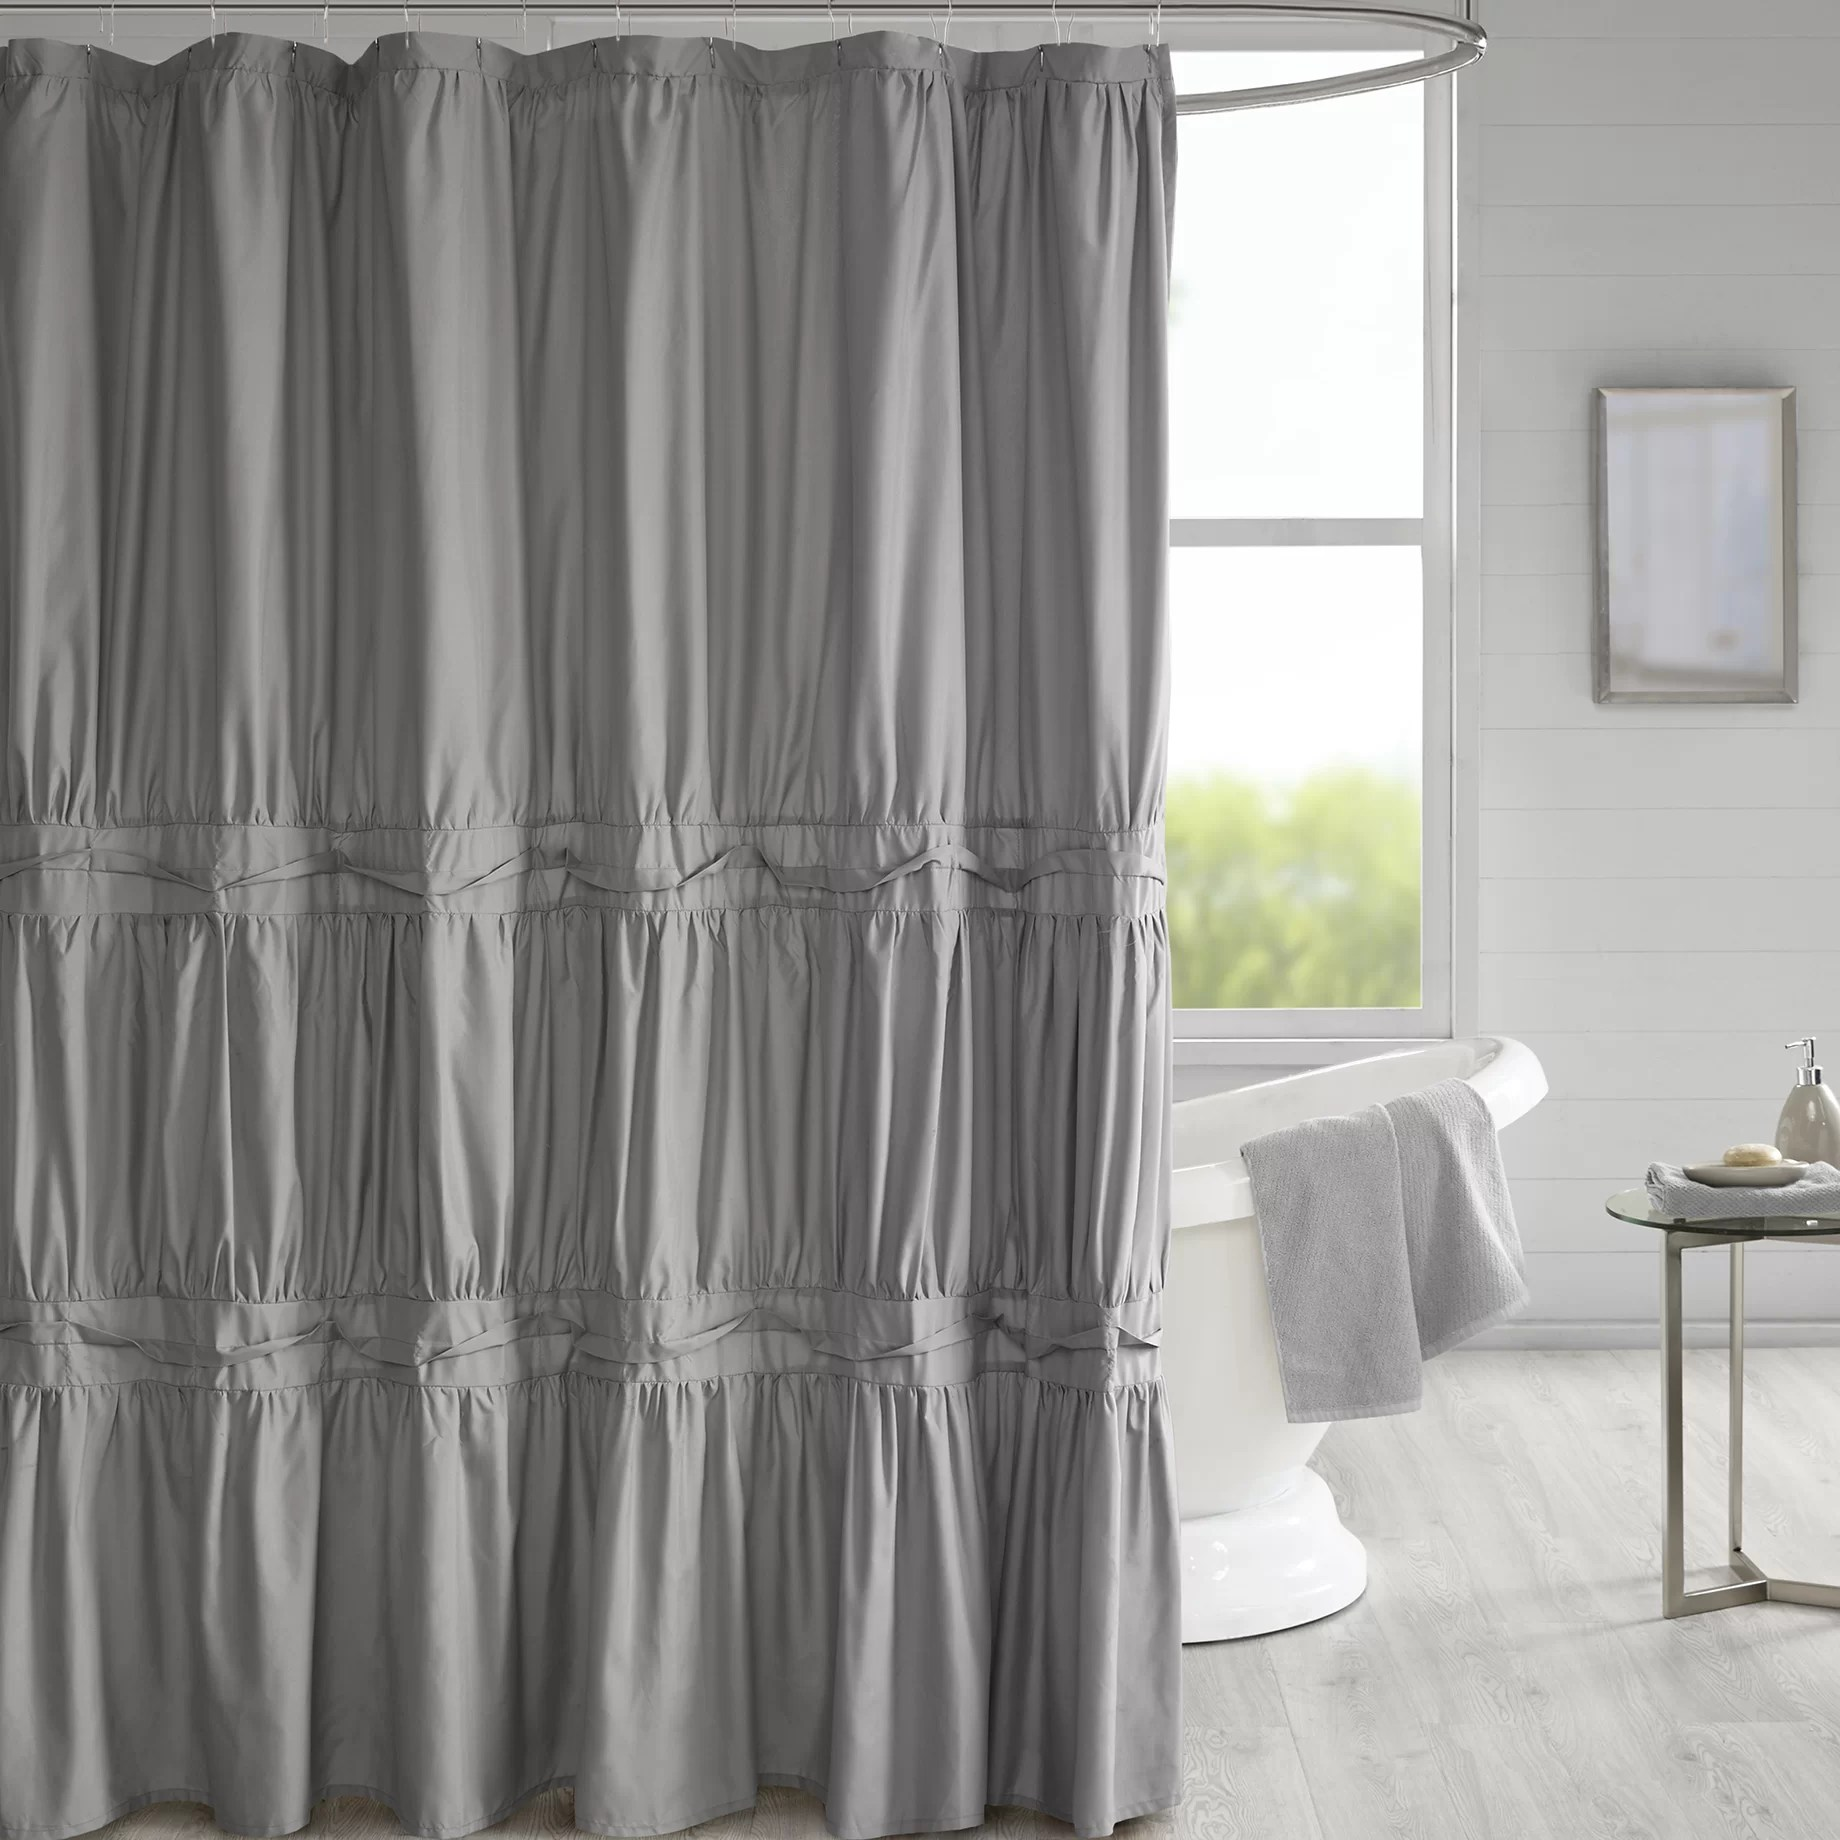 Cute Girly Shower Curtains Tyntesfield Solid Single Shower Curtain